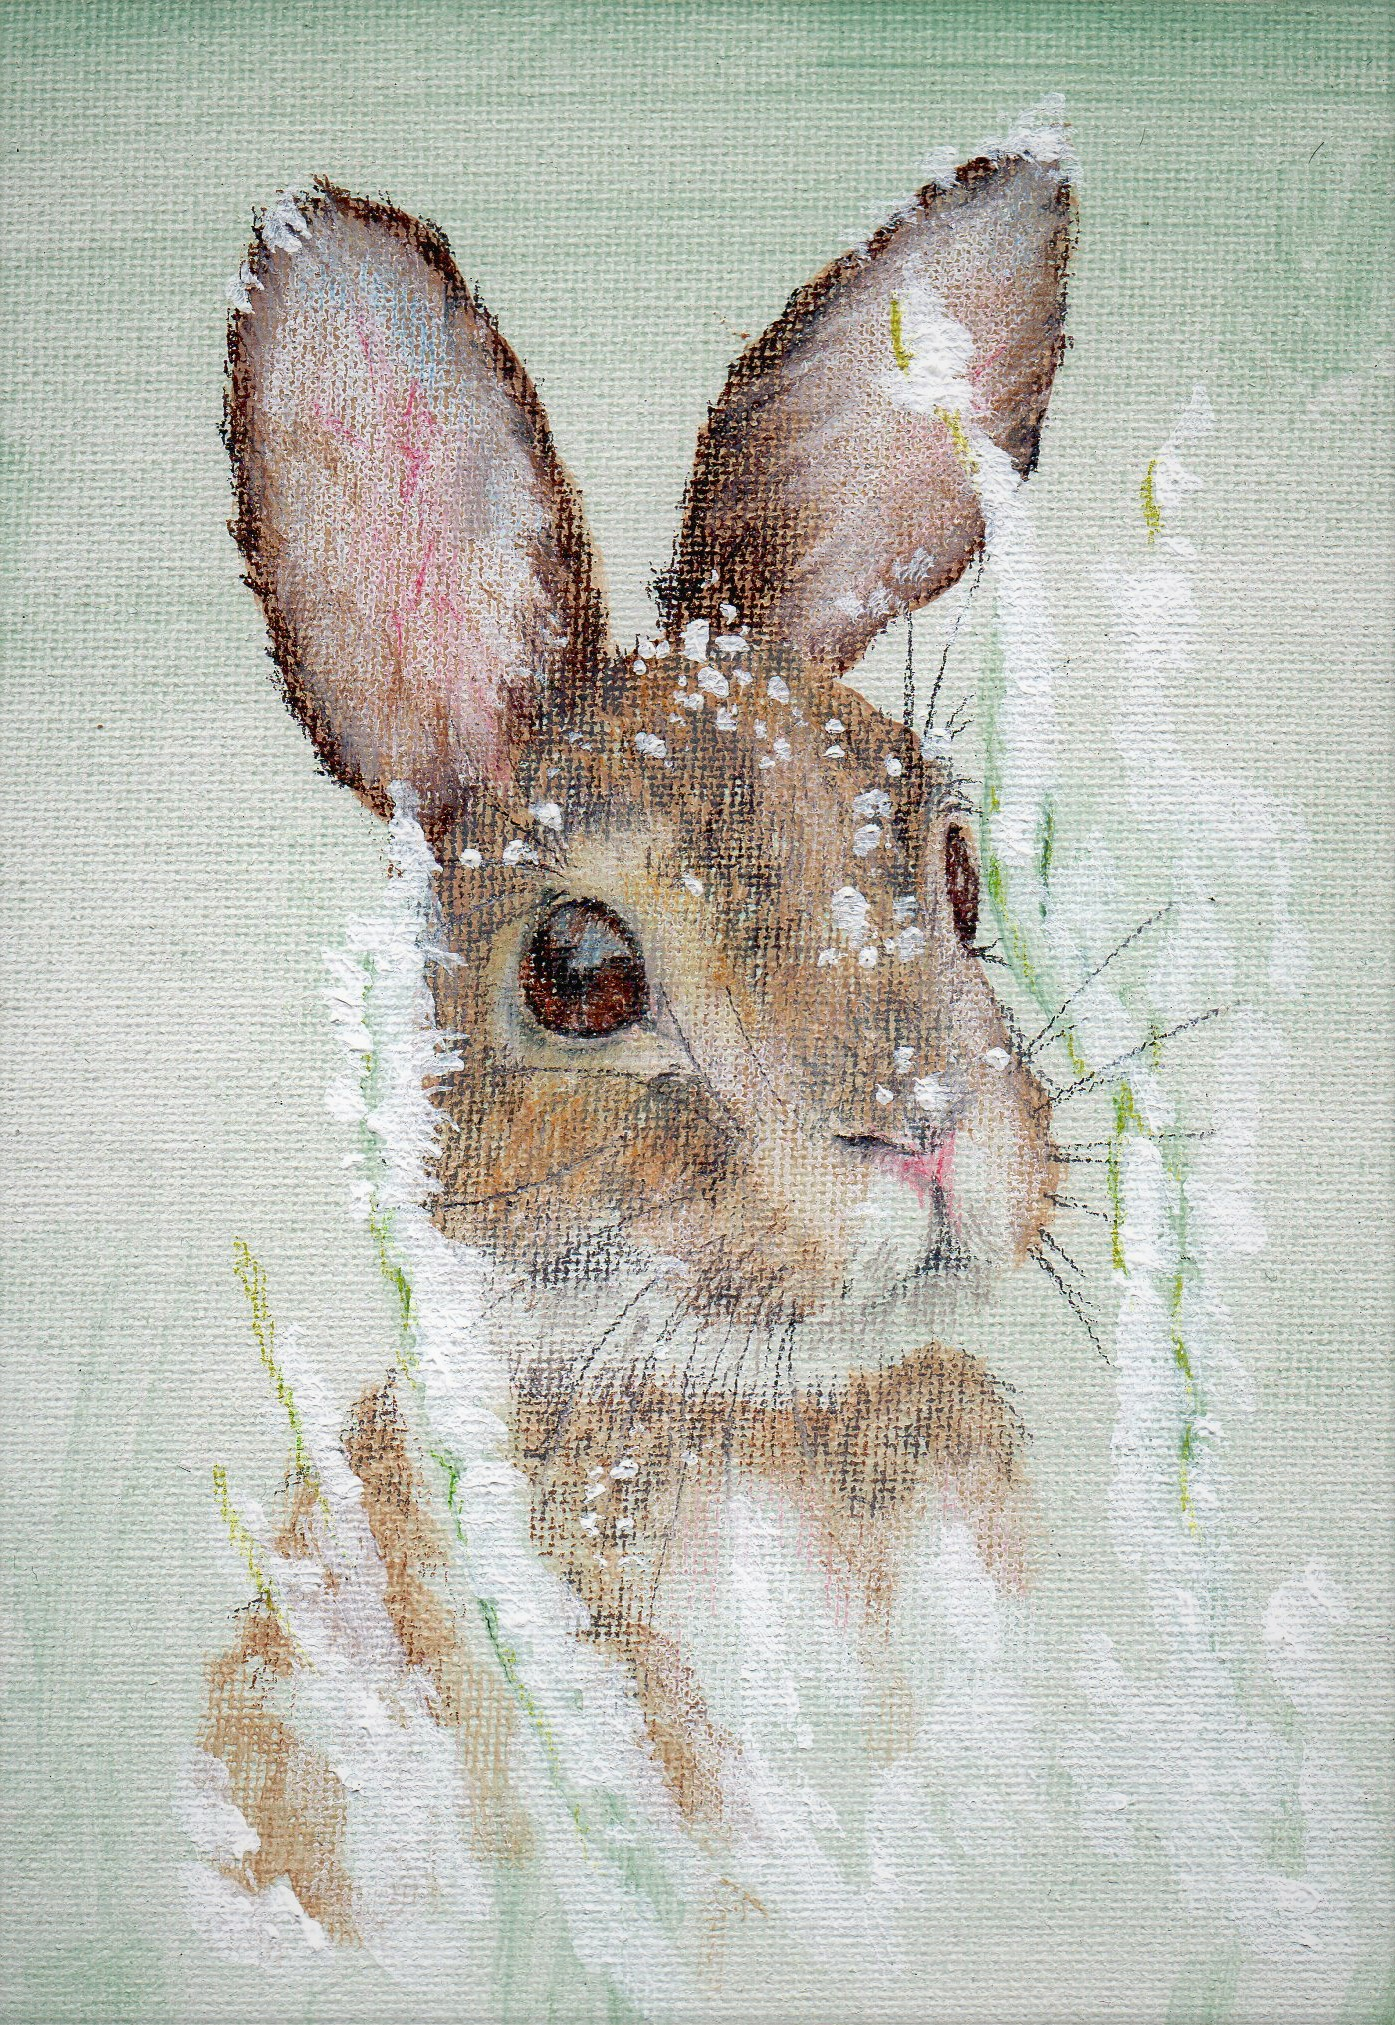 Rabbit in snow